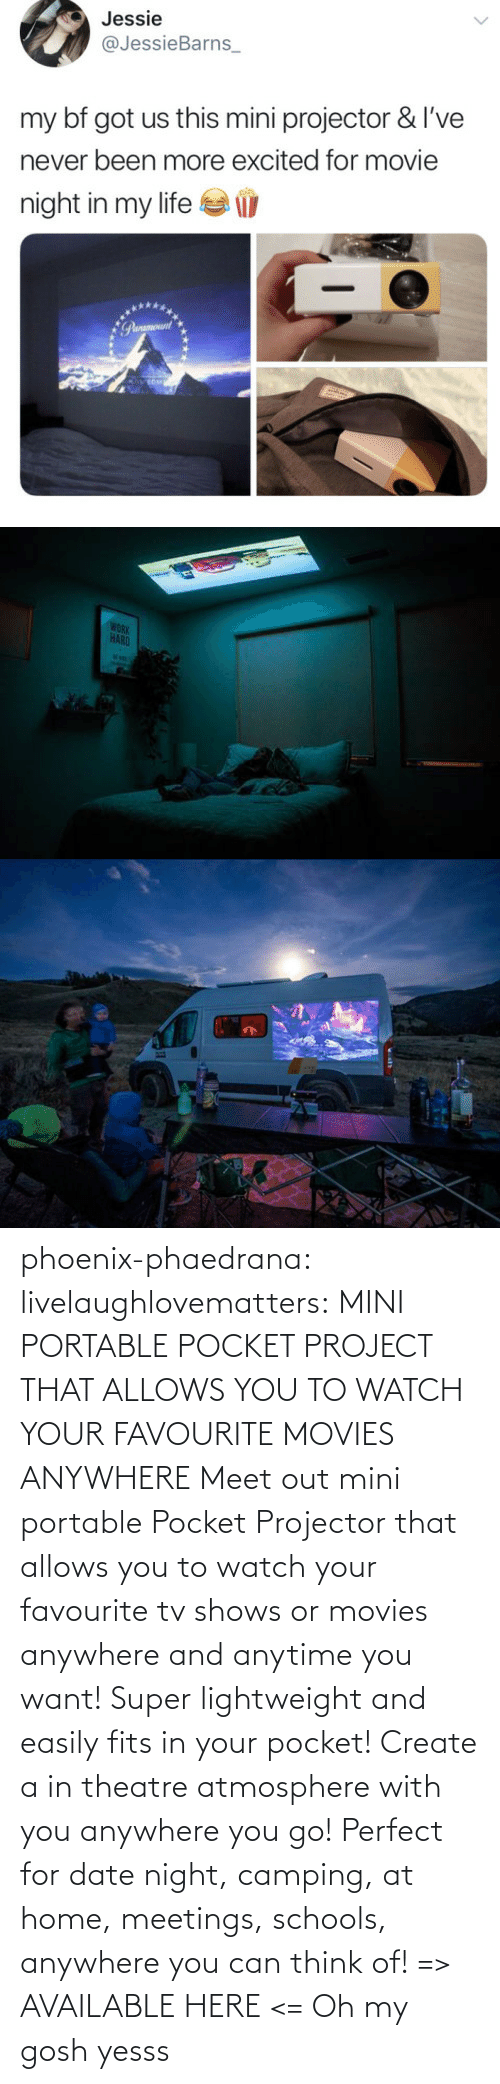 super: phoenix-phaedrana: livelaughlovematters:  MINI PORTABLE POCKET PROJECT THAT ALLOWS YOU TO WATCH YOUR FAVOURITE MOVIES ANYWHERE Meet out mini portable Pocket Projector that allows you to watch your favourite tv shows or movies anywhere and anytime you want! Super lightweight and easily fits in your pocket! Create a in theatre atmosphere with you anywhere you go! Perfect for date night, camping, at home, meetings, schools, anywhere you can think of! => AVAILABLE HERE <=  Oh my gosh yesss